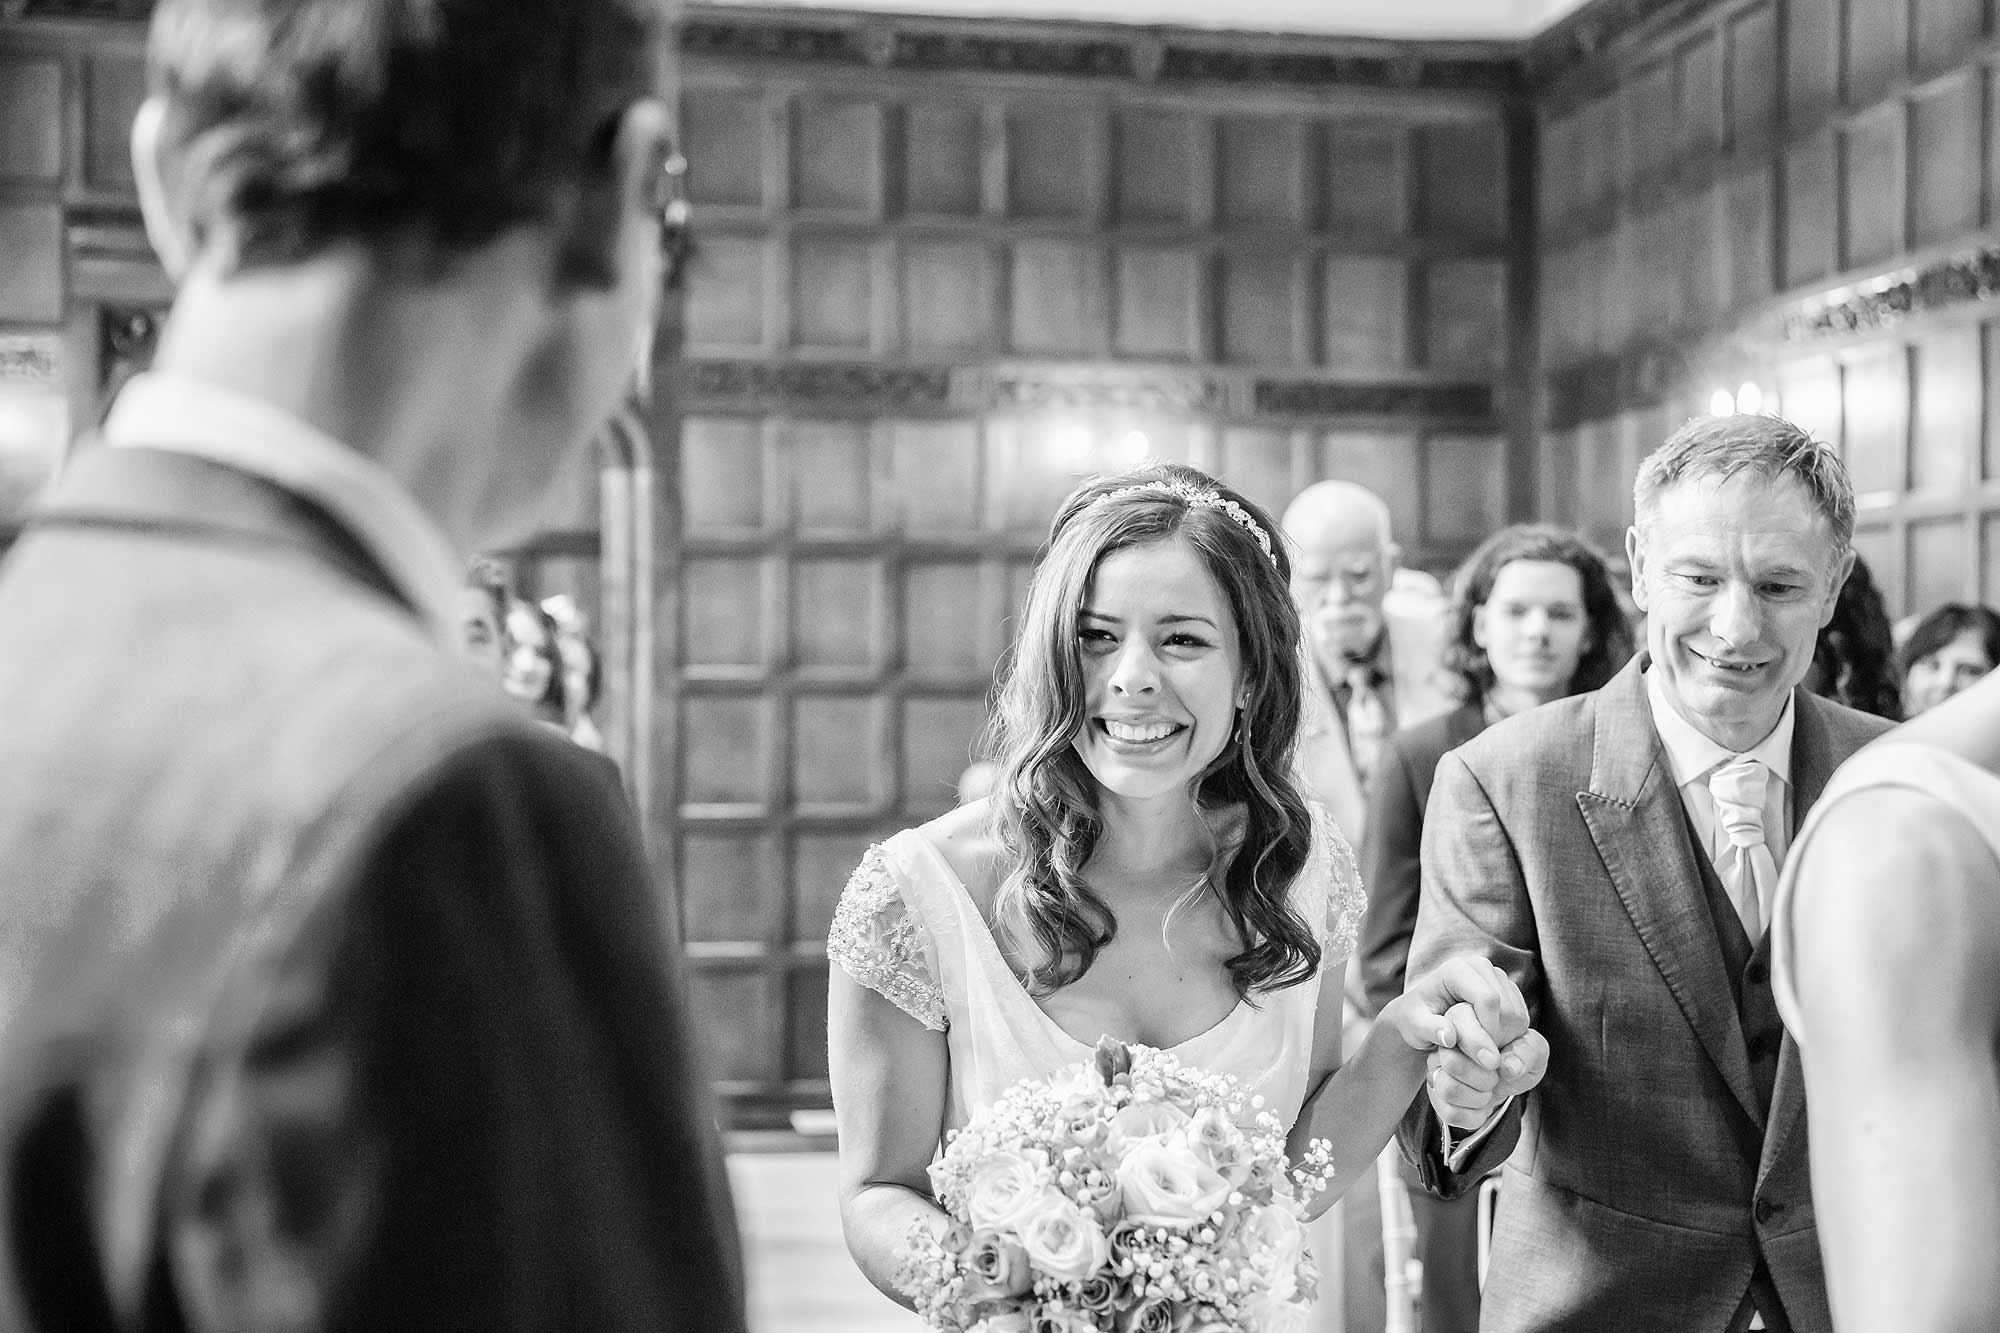 Amy smiles at Jack as she walks down the aisle on the arm of her Dad